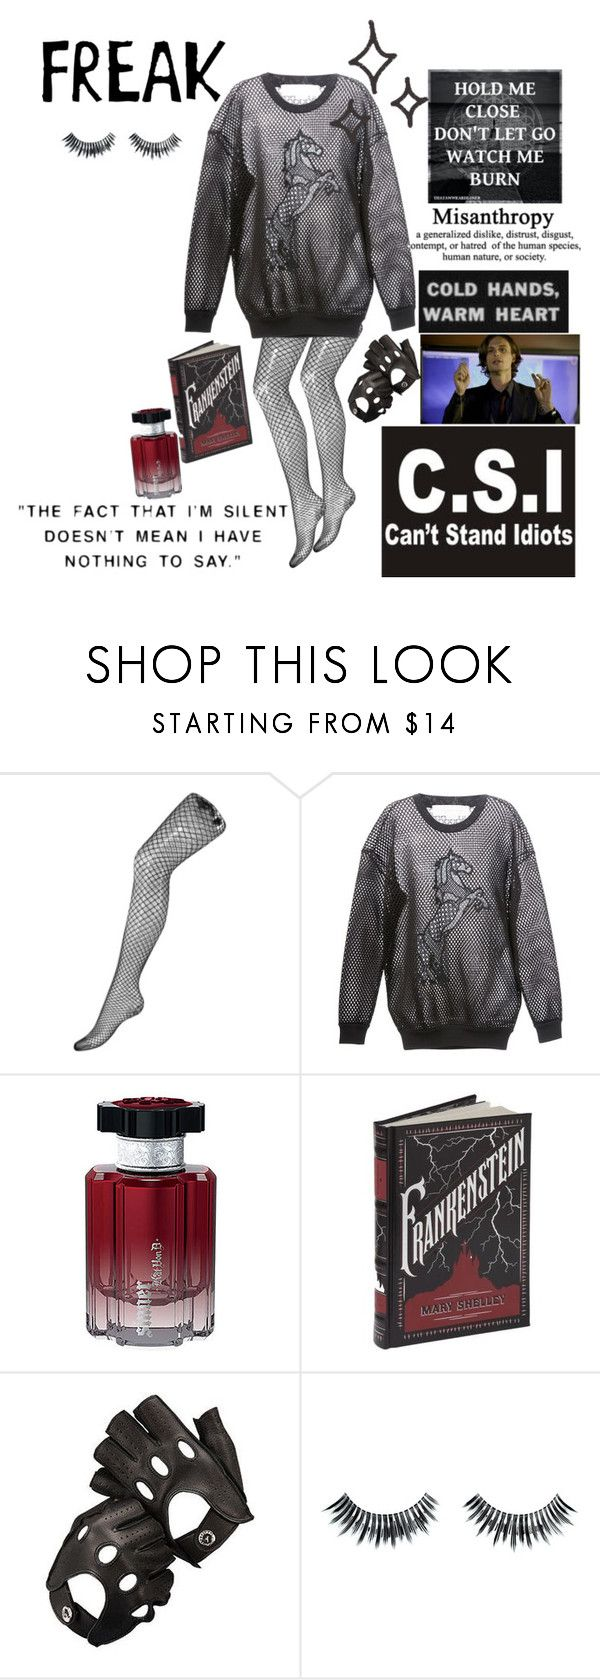 """Time For A Criminal Minds Marathon"" by pyrokittenkat ❤ liked on Polyvore featuring STELLA McCARTNEY, Kat Von D, Aspinal of London, Napoleon Perdis and Religion Clothing"